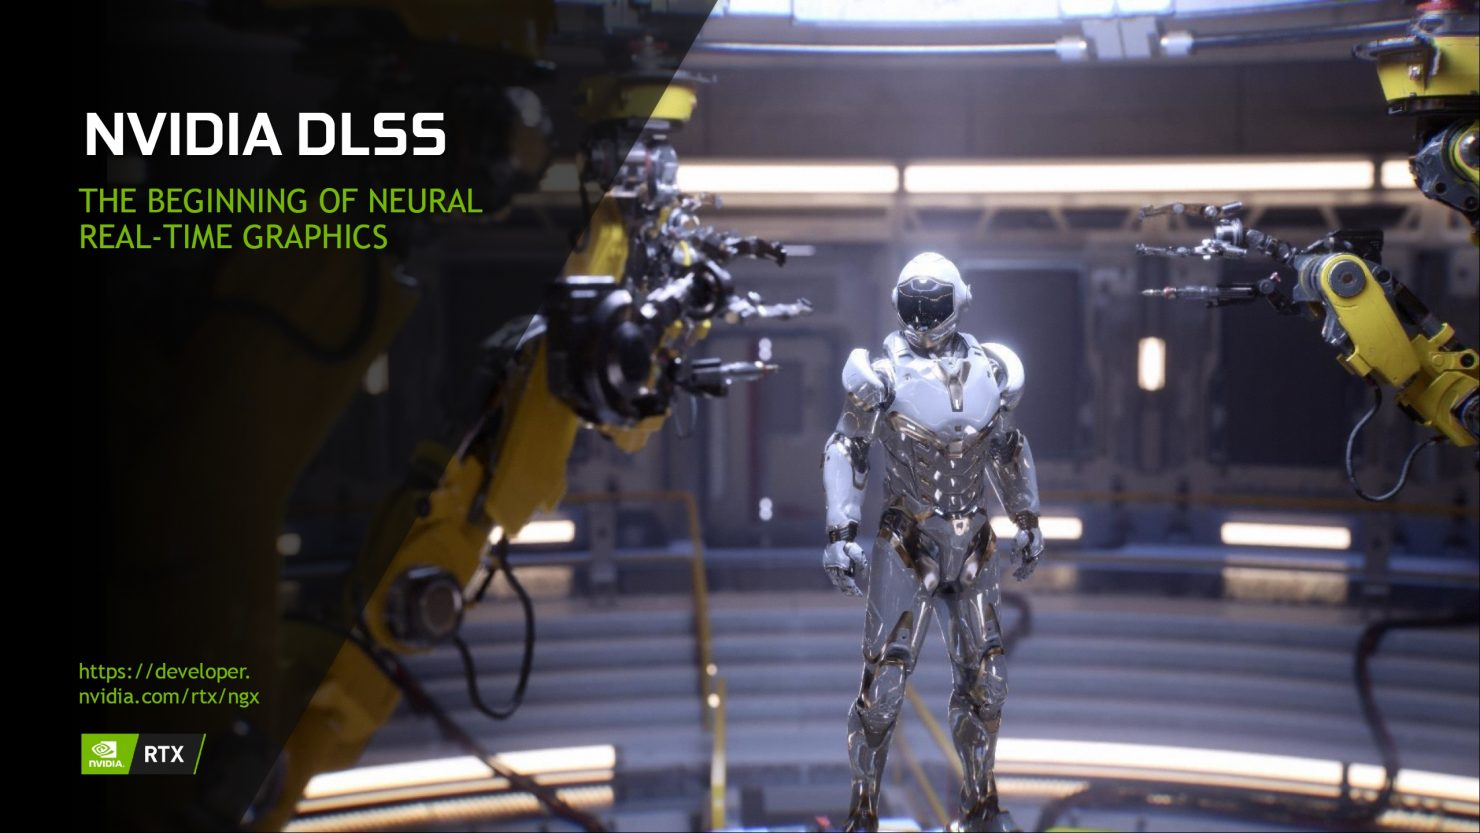 nvidia-invites-developers-to-test-experimental-dlss-models-directly-fromhellip